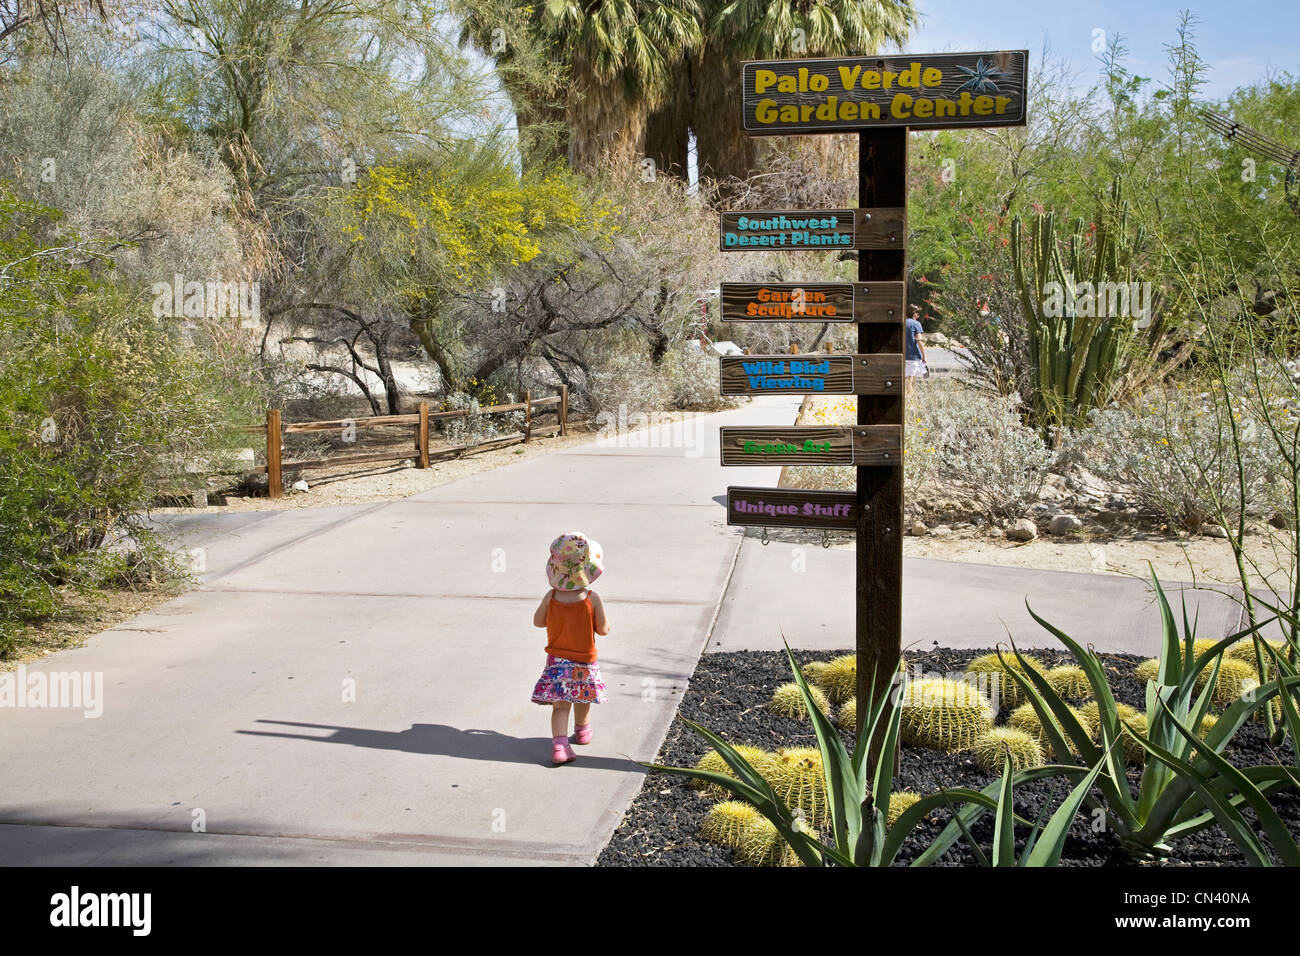 Great A Visitor Walks The Gardens At The Living Desert Zoo In Palm Springs,  California